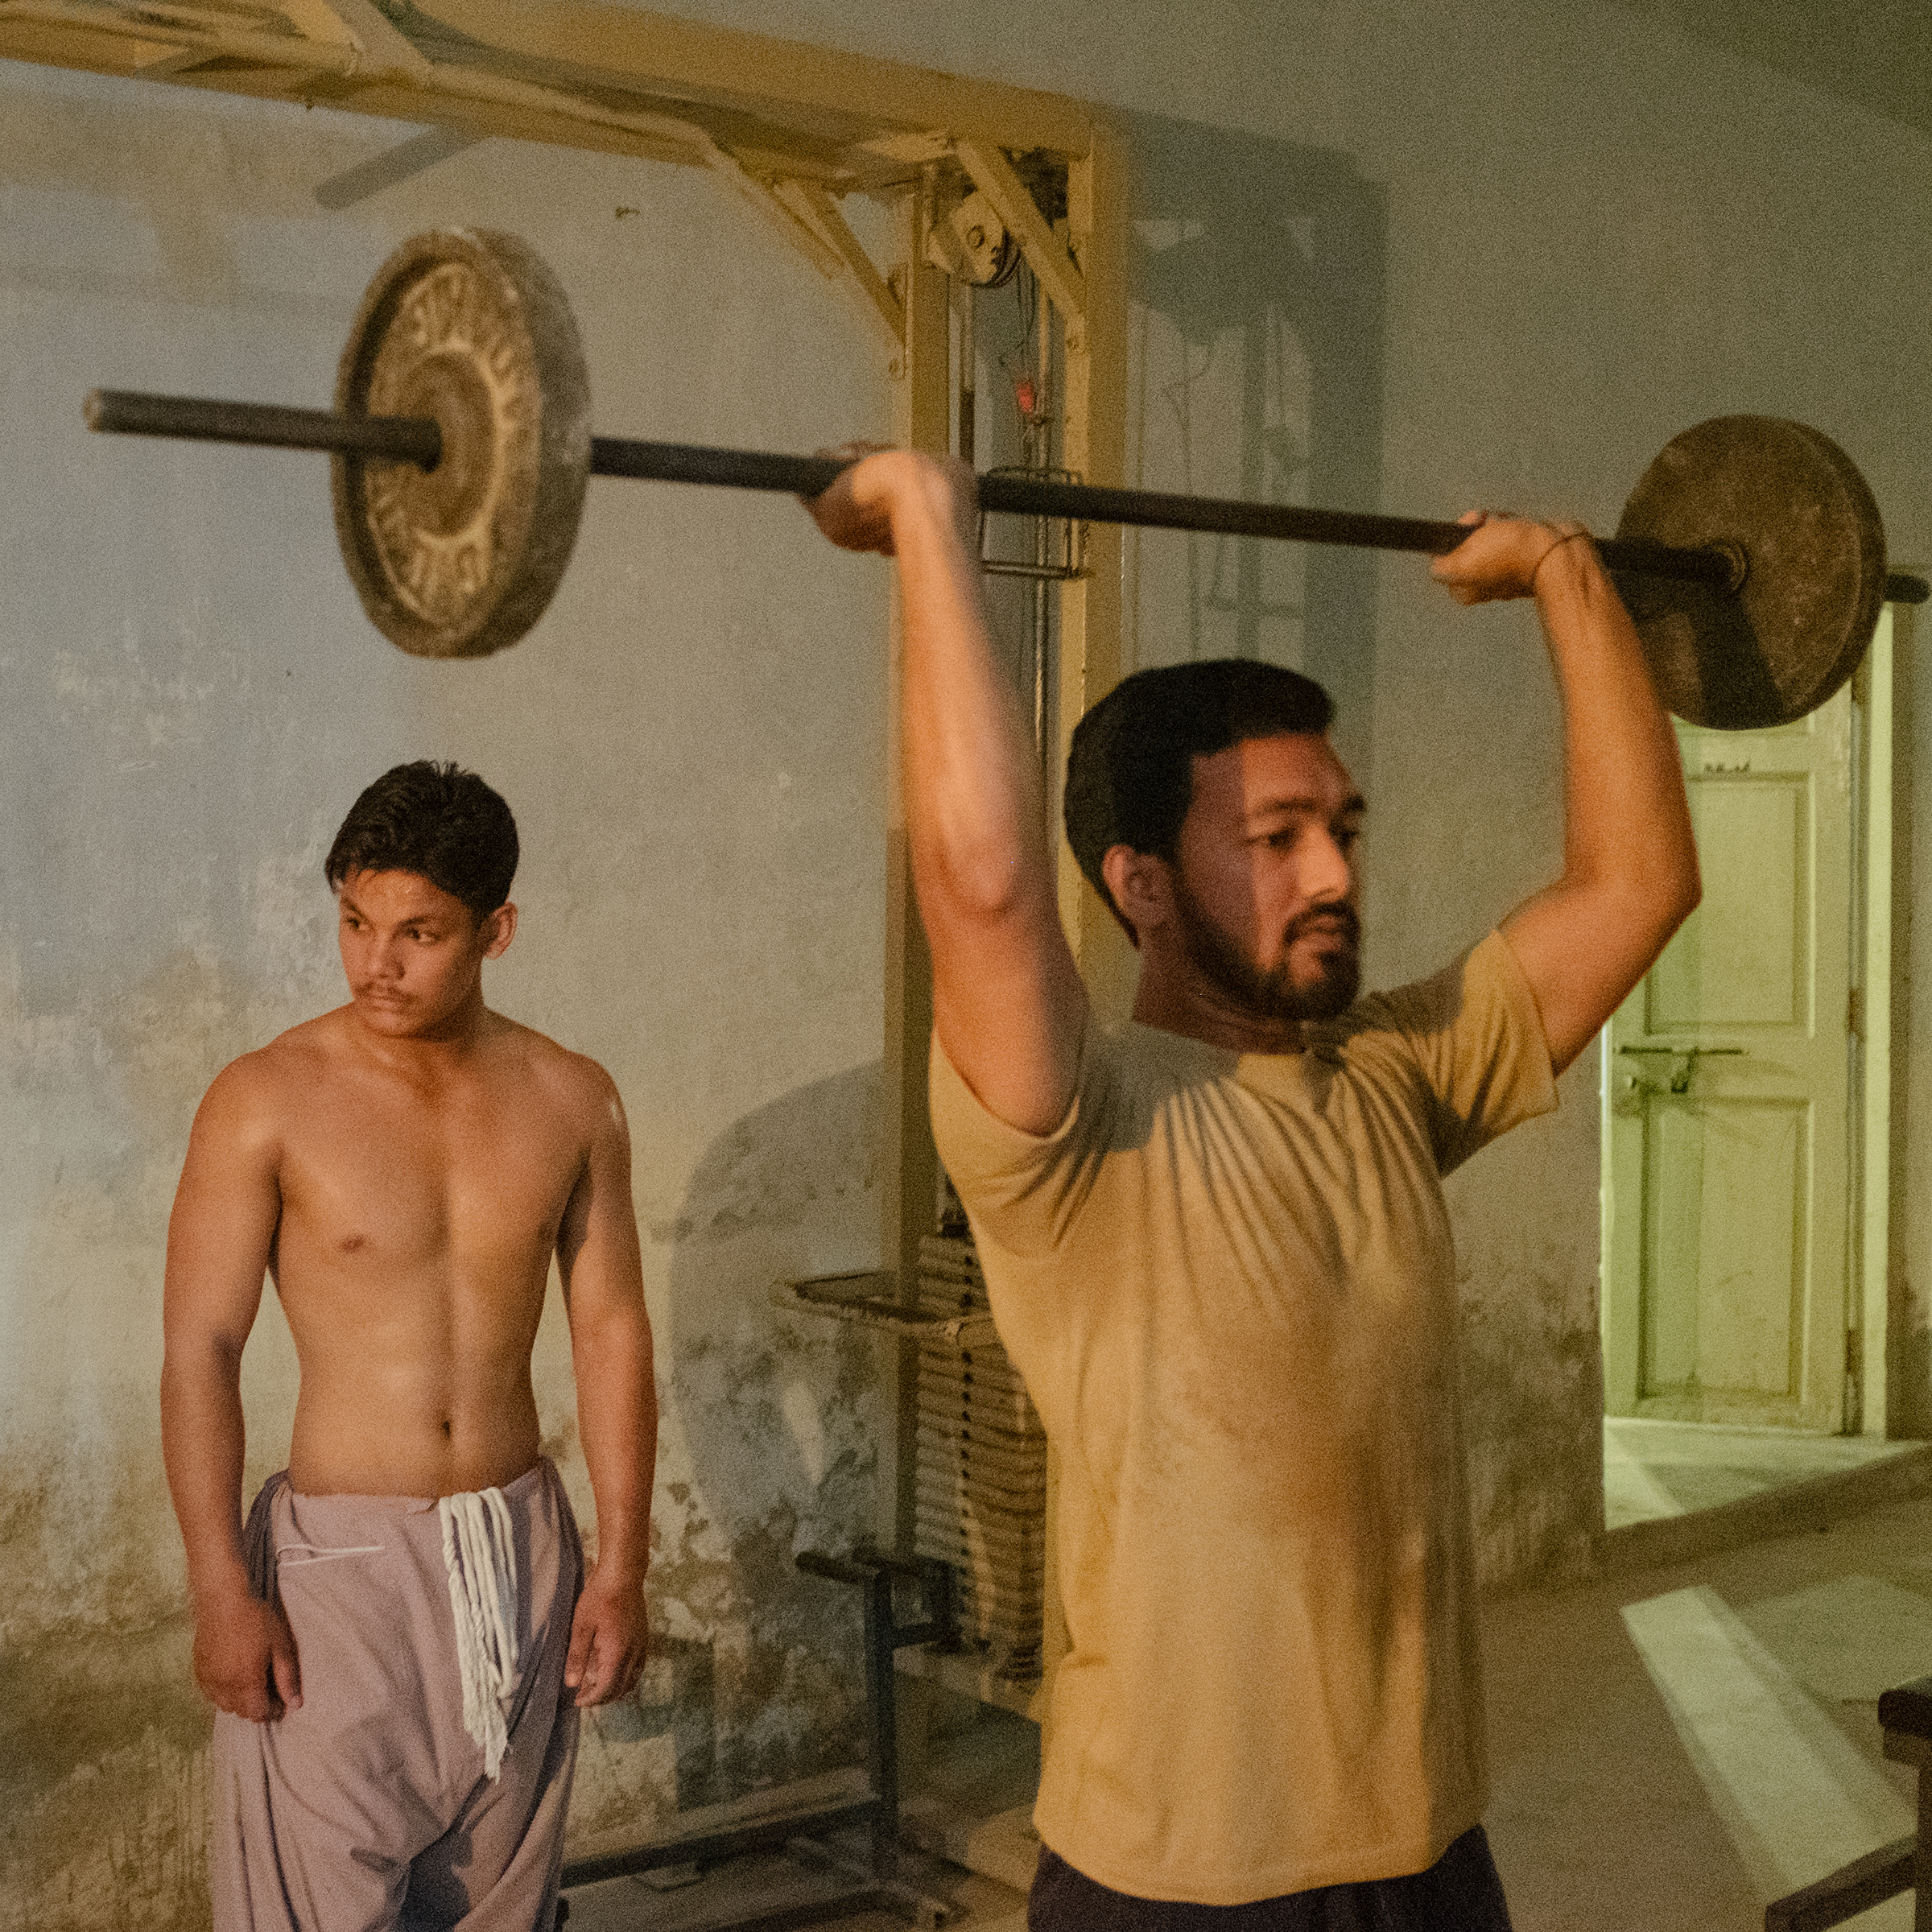 Without air conditioning, life still goes on at a Jacobabad fitness center on June 29.